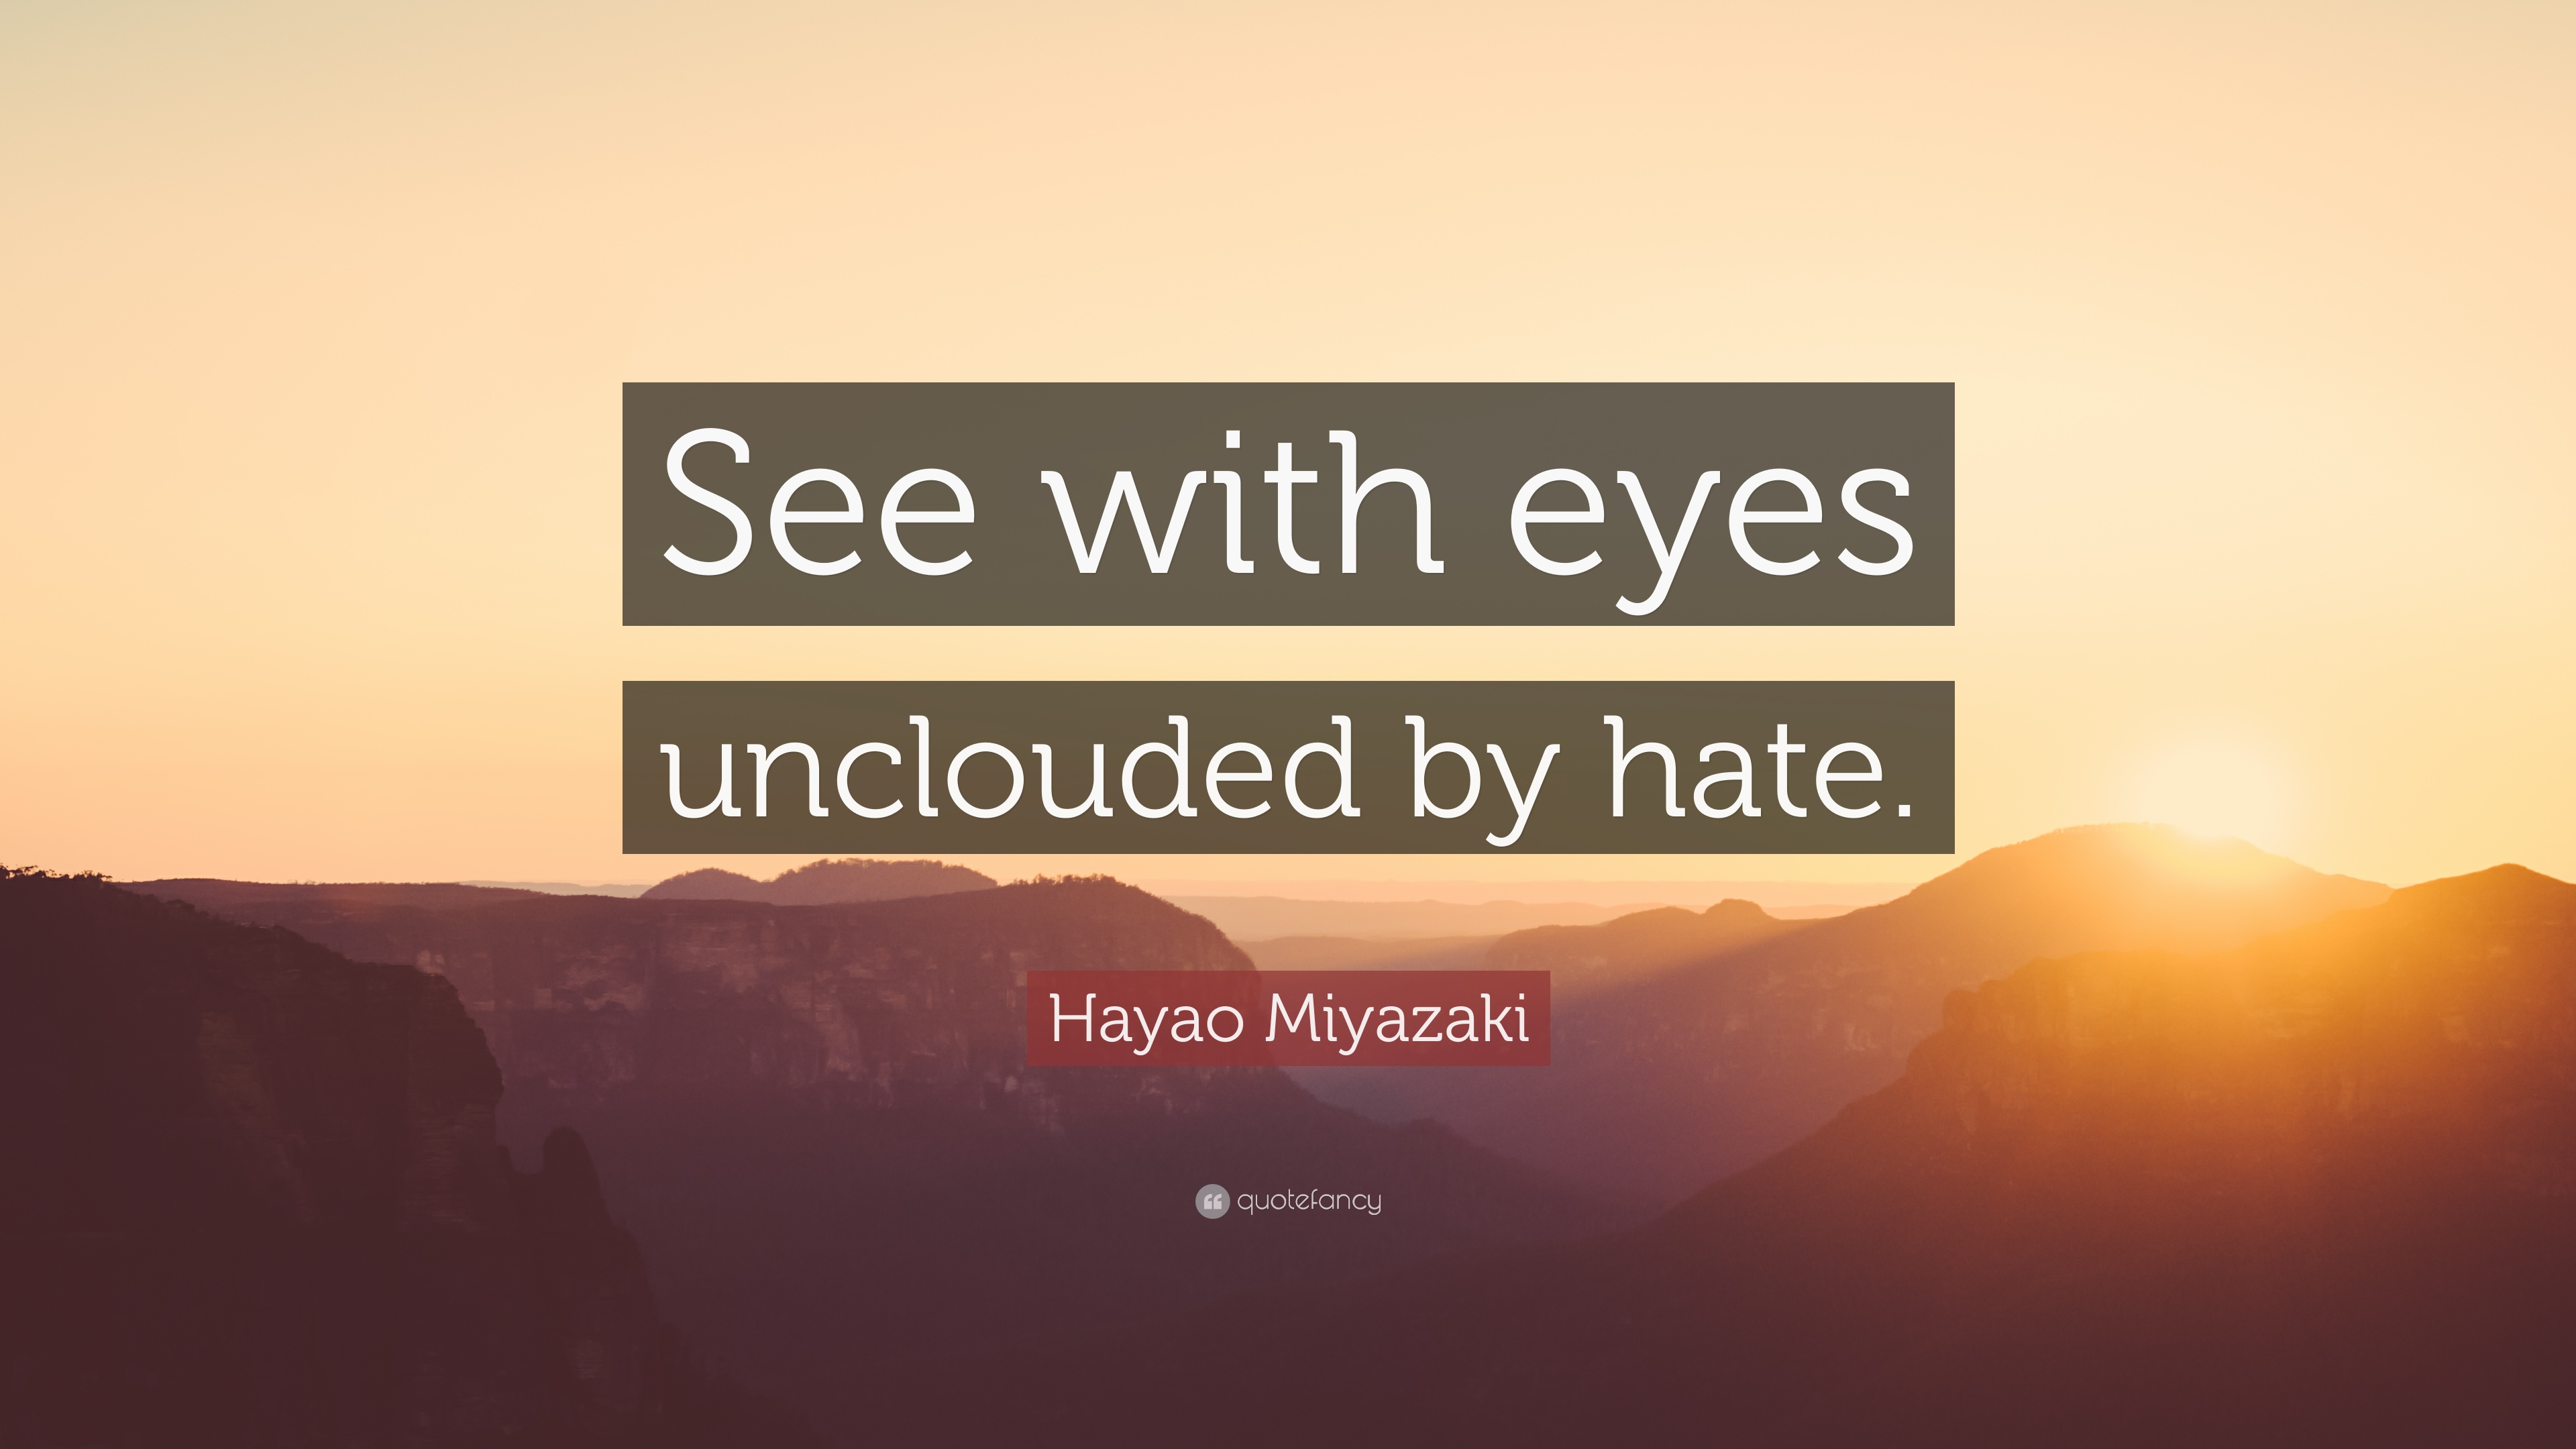 To see with eyes unclouded by hate